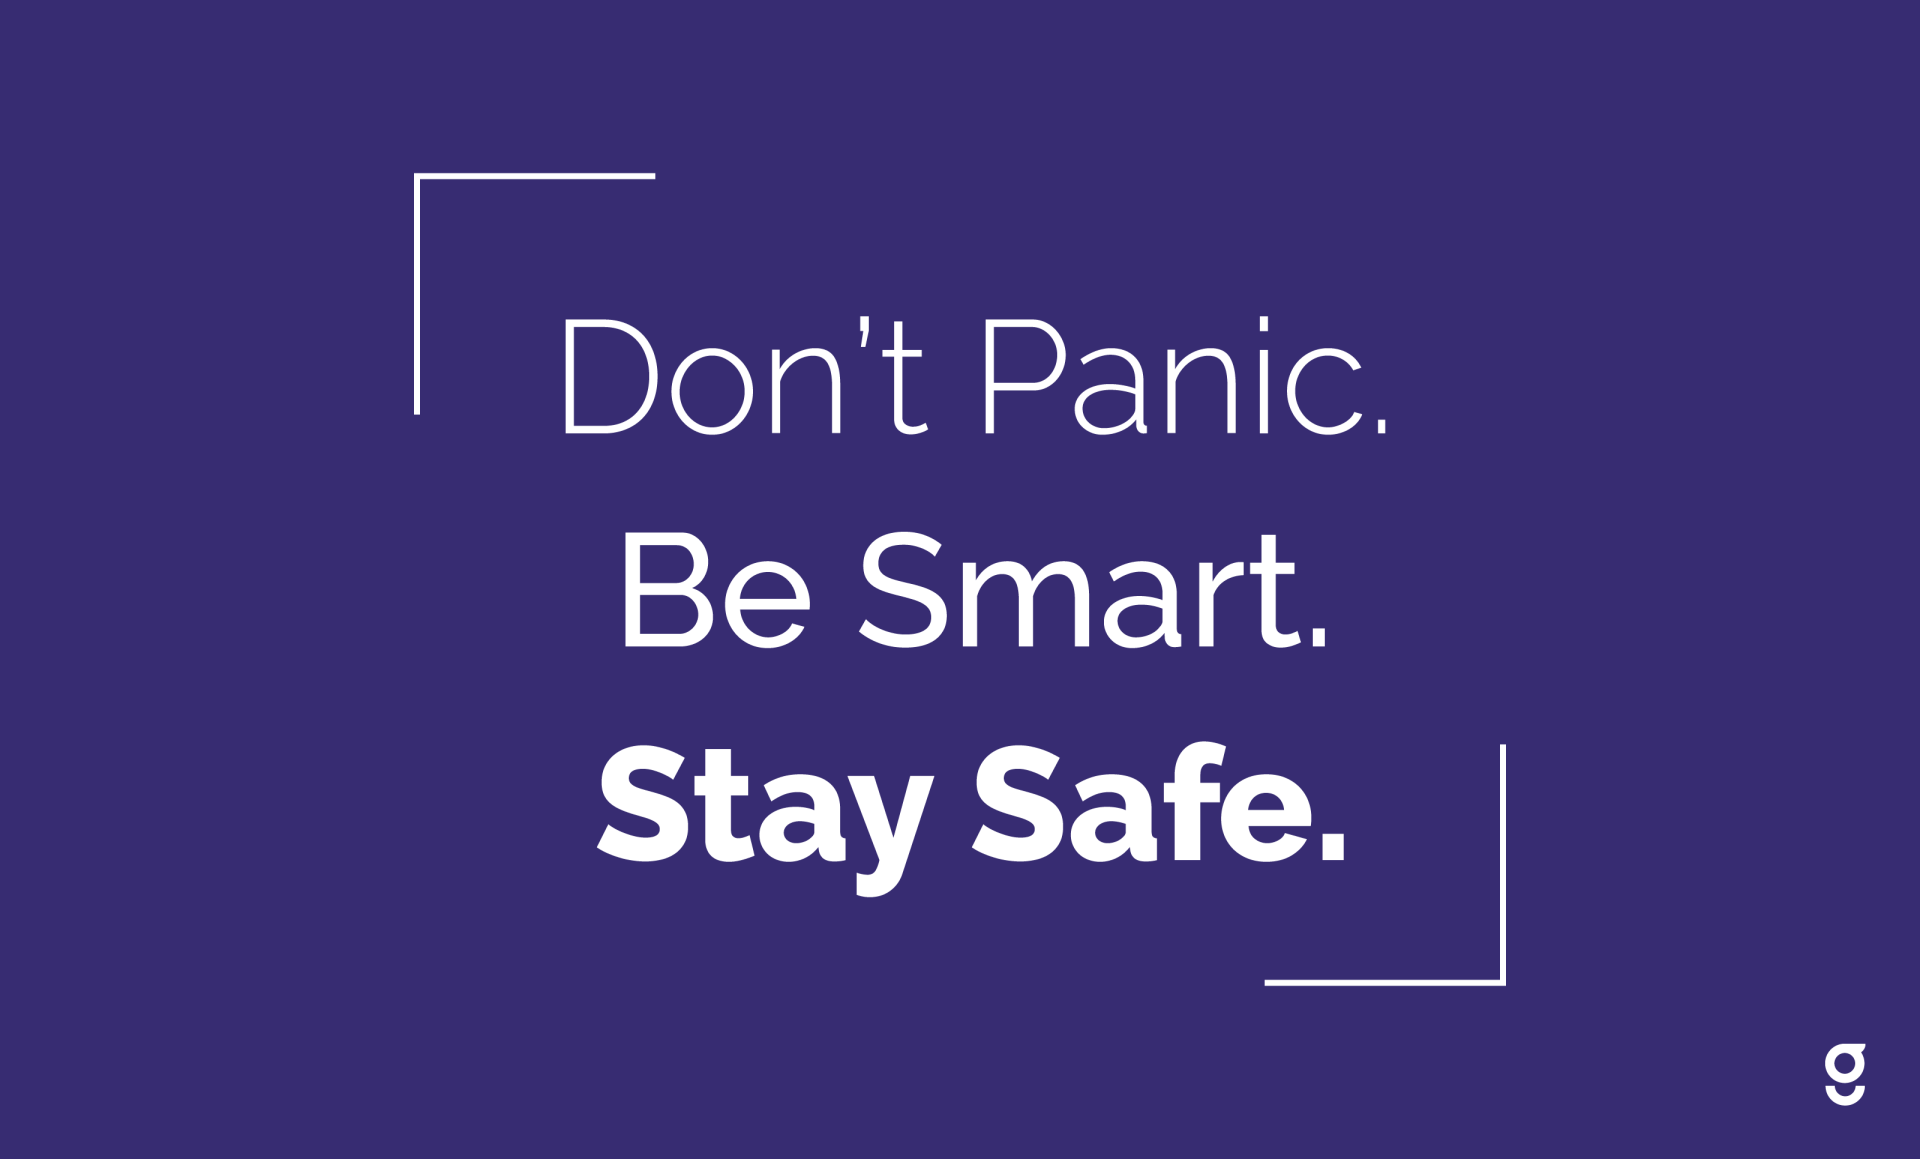 Don't Panic. Be Smart. Stay Safe.